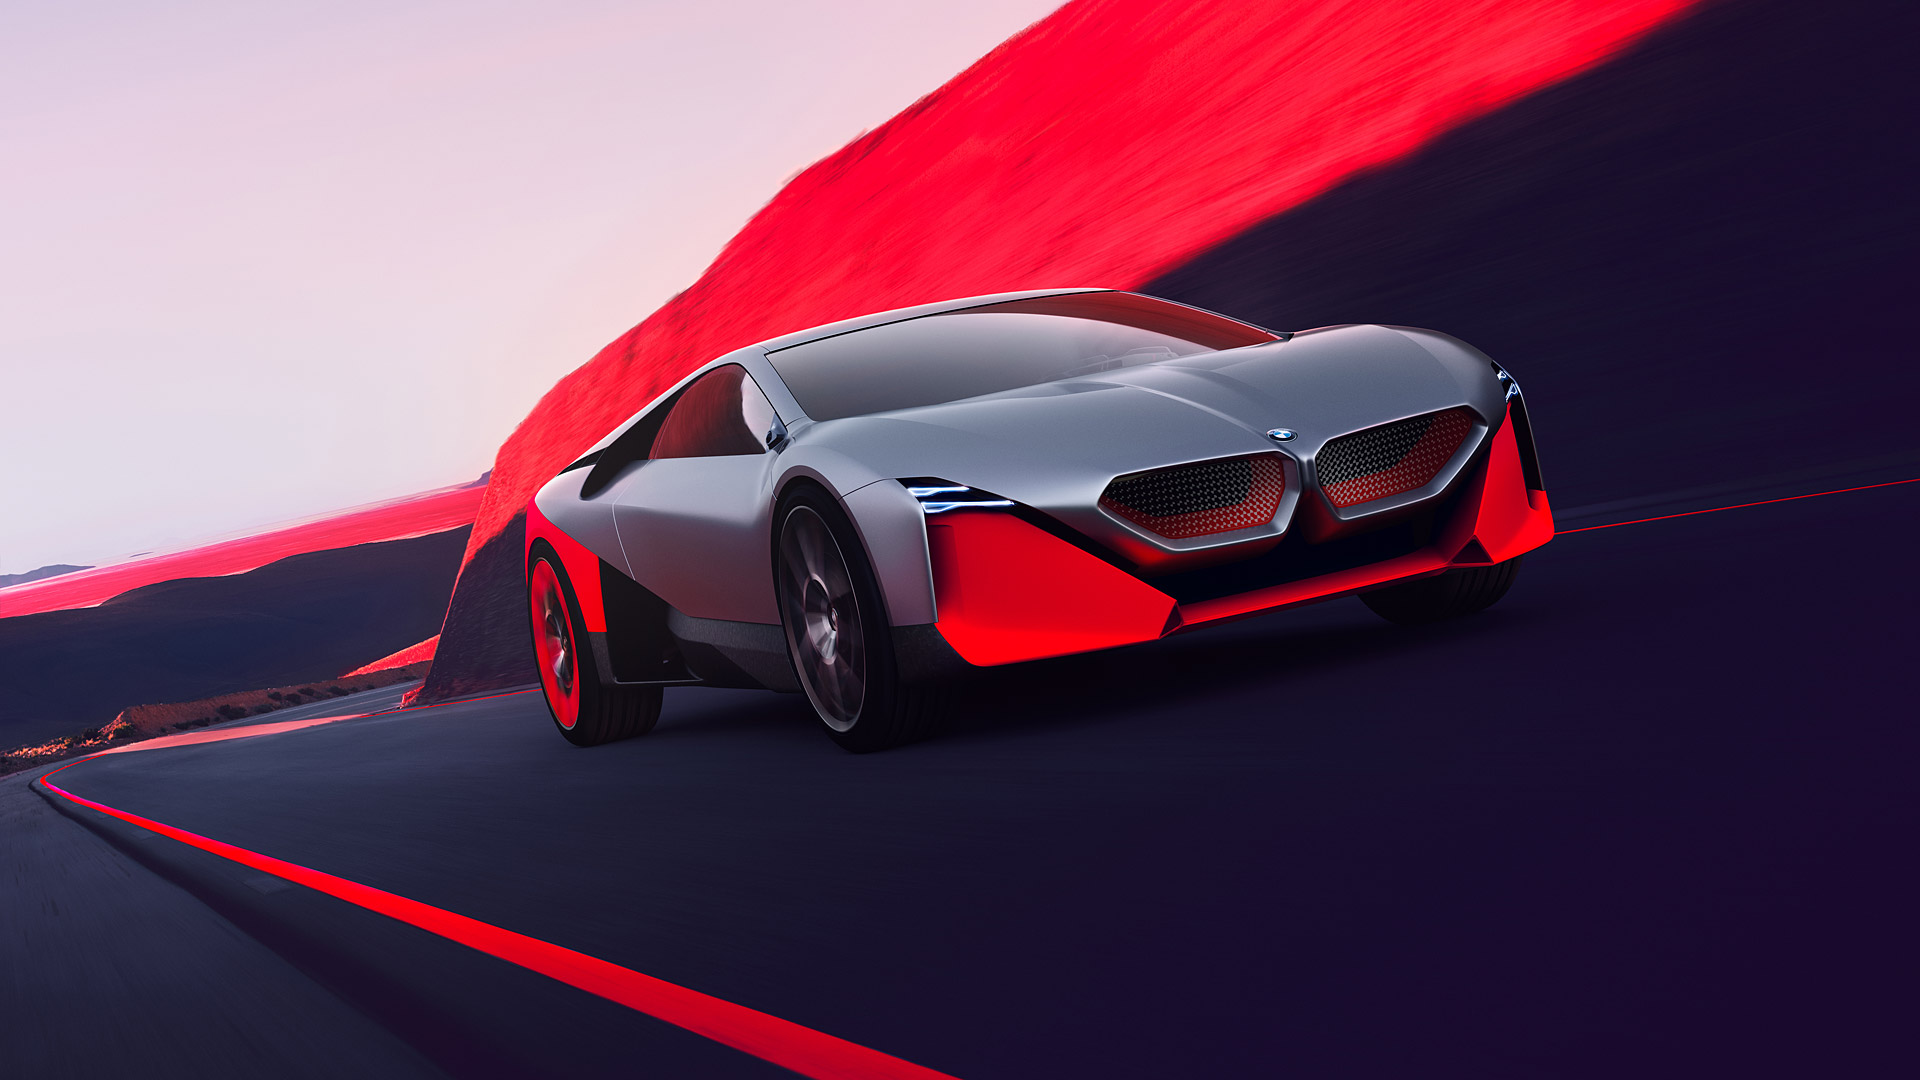 Bmw Wallpapers Wallpapers All Superior Bmw Wallpapers Backgrounds Wallpapersplanet Net